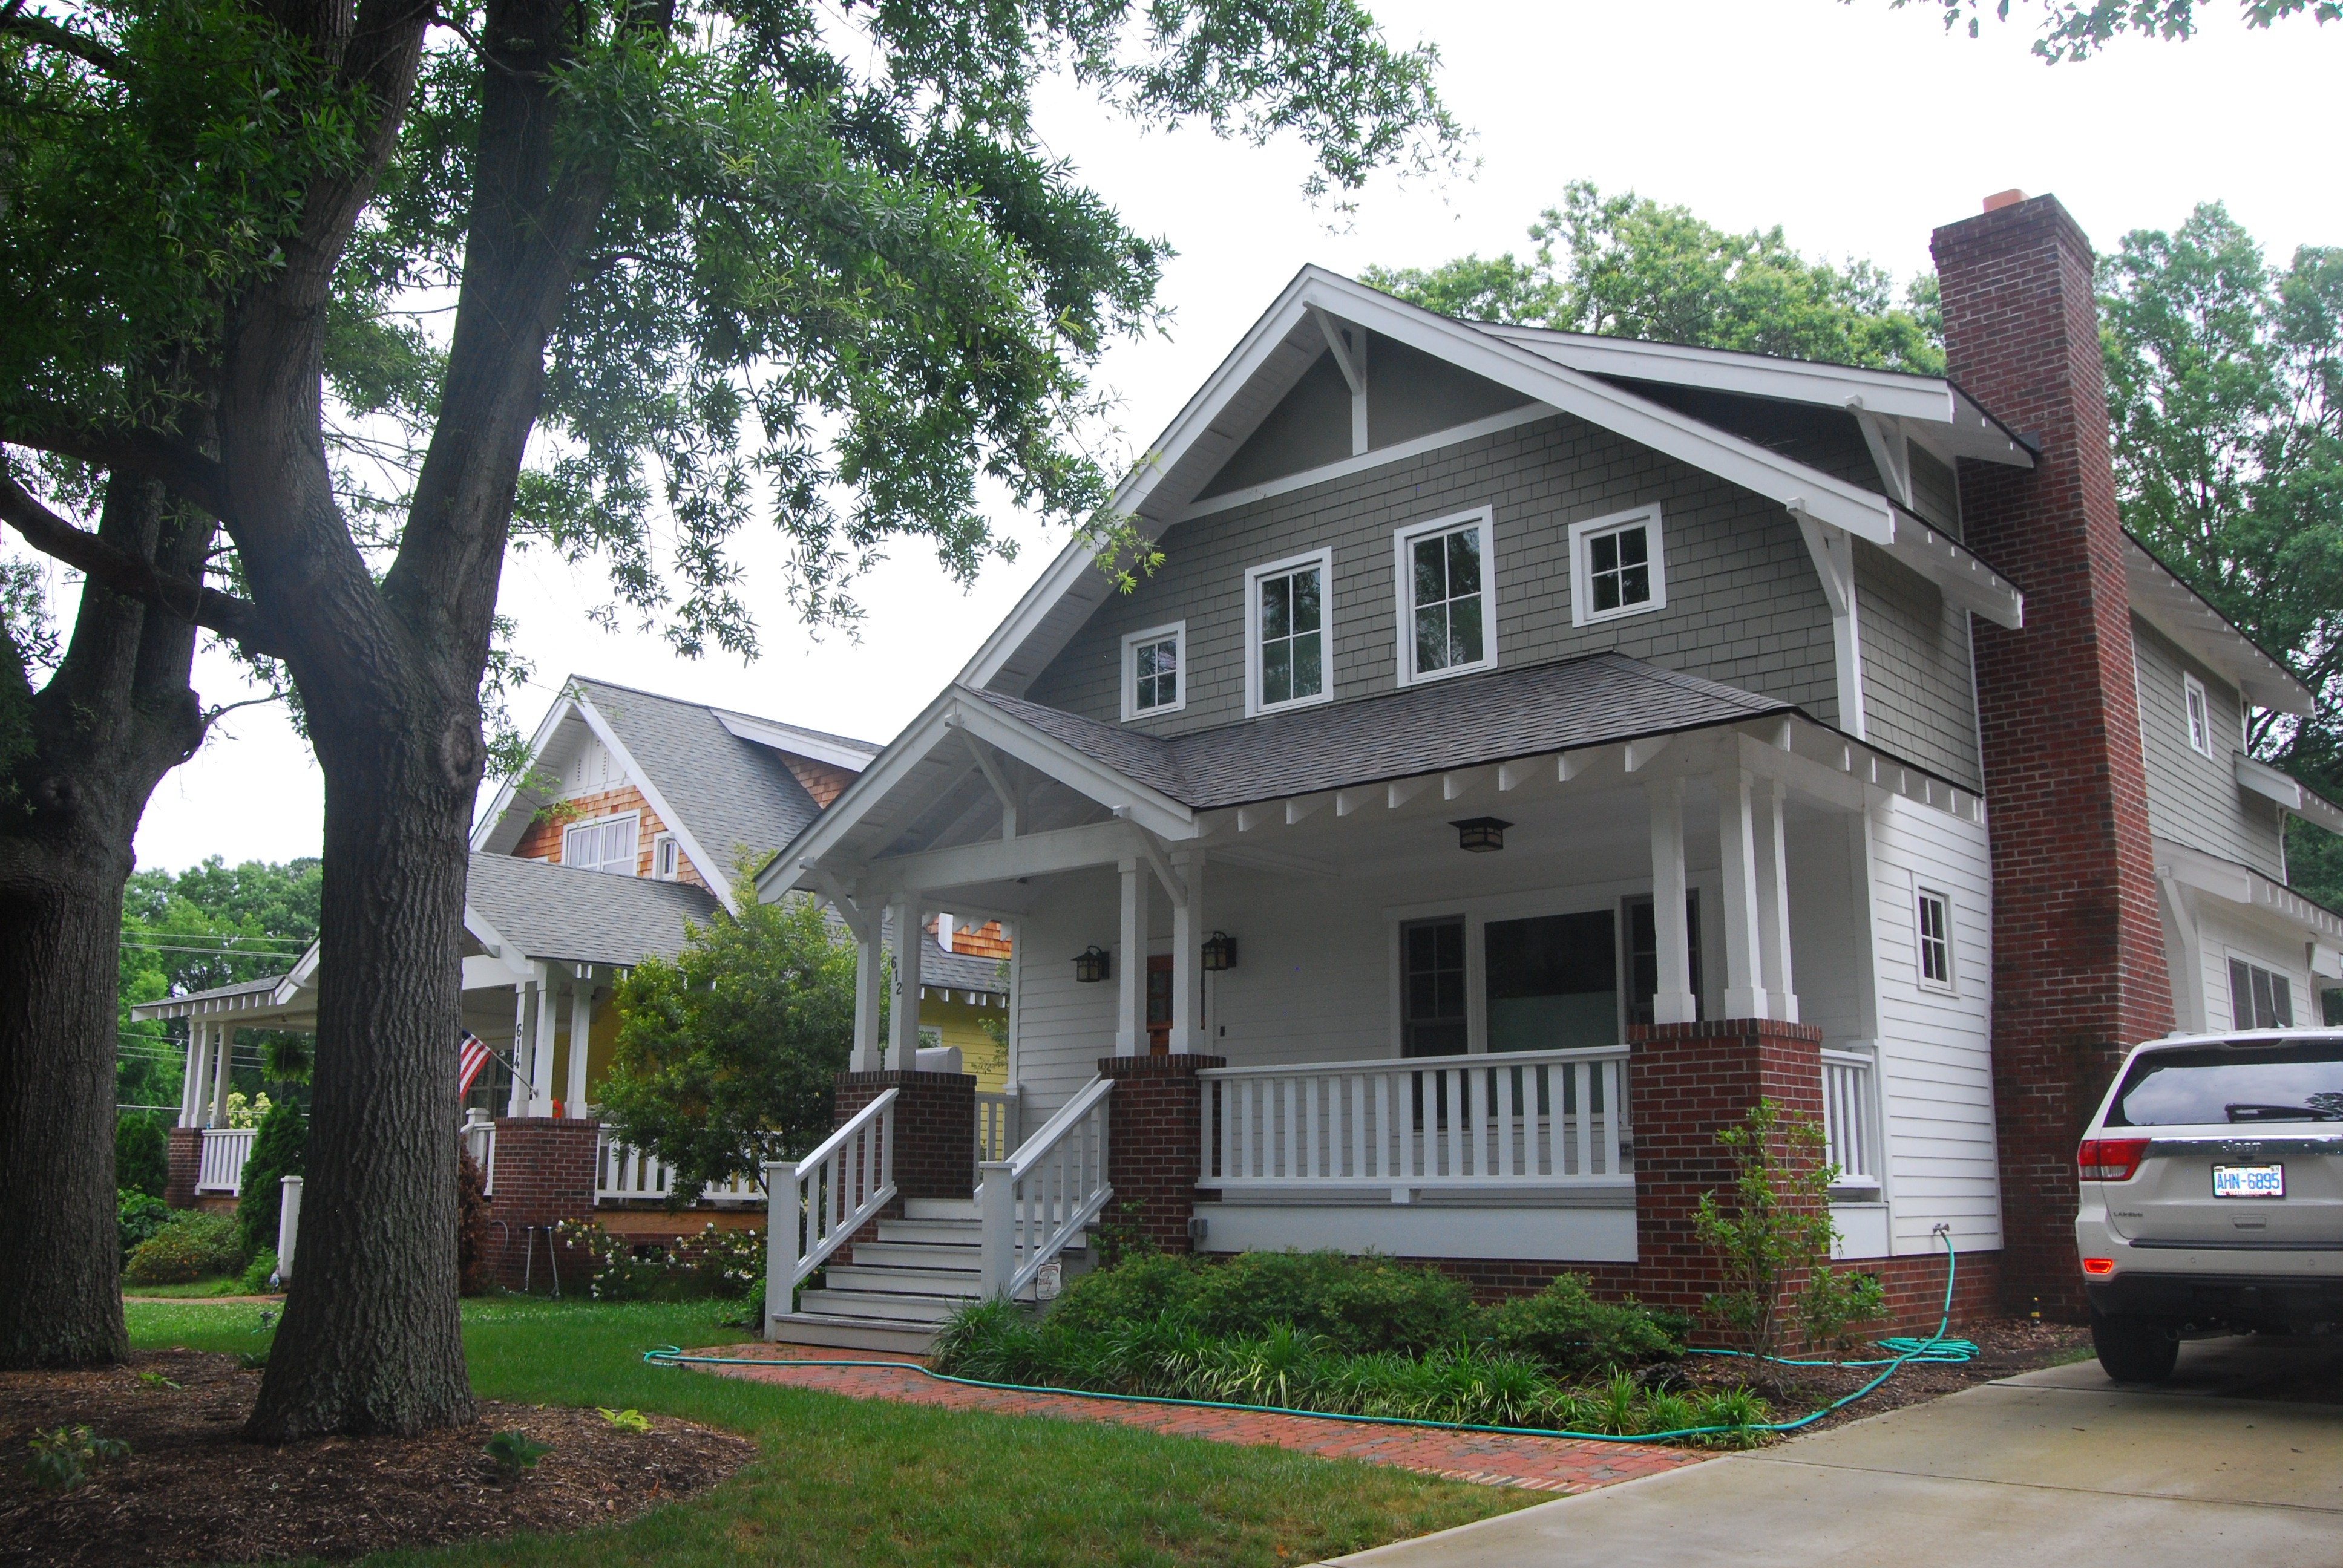 2012 Homes of the Month University Park Homeowners ssociation - ^